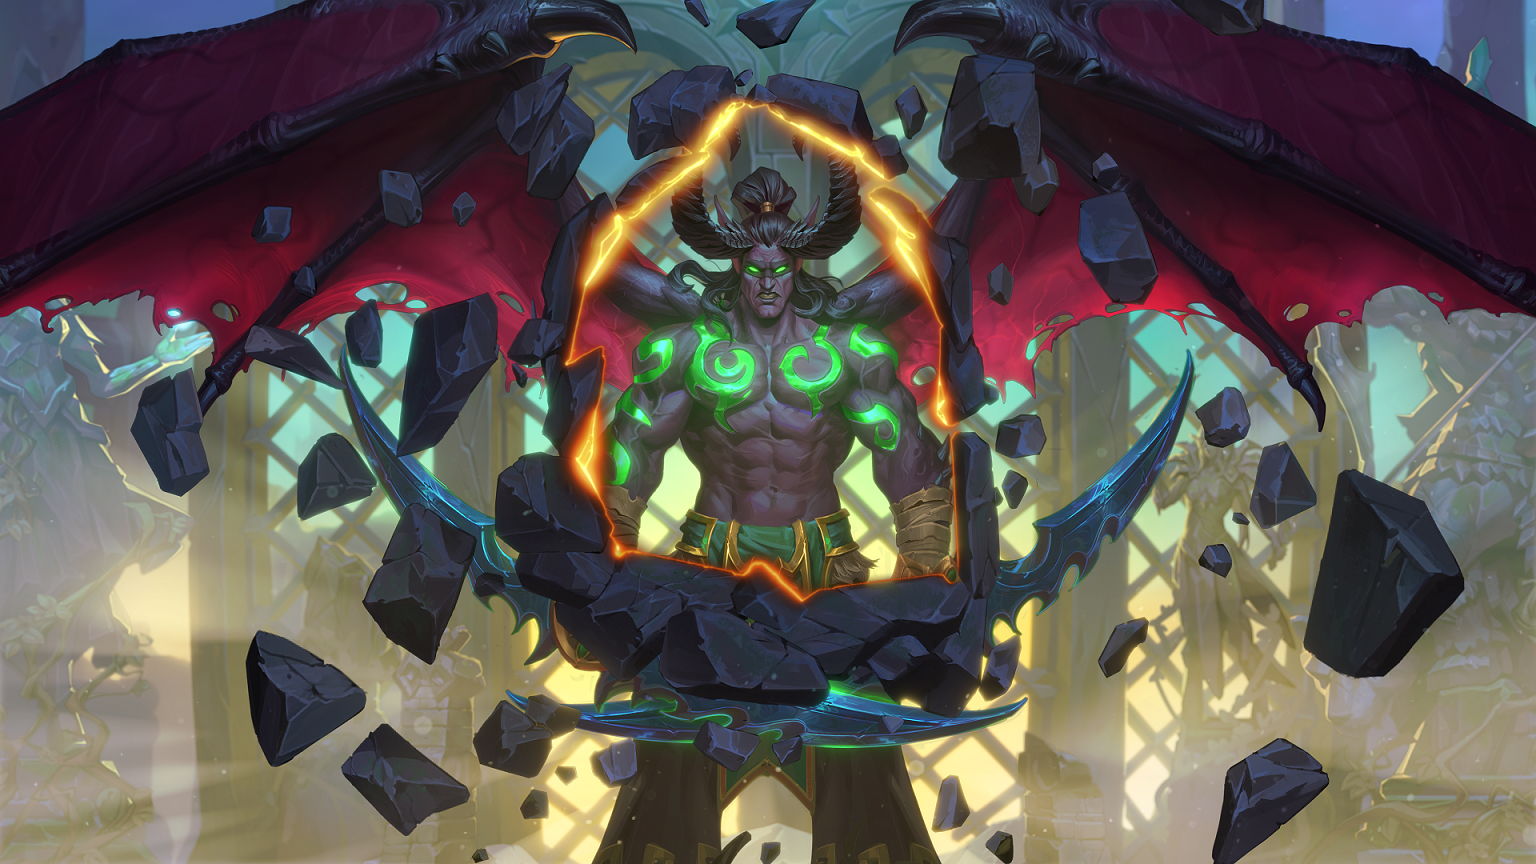 Apexis Smuggler and Apexis Blast join the Mage class in Hearthstone's Ashes of Outland expansion